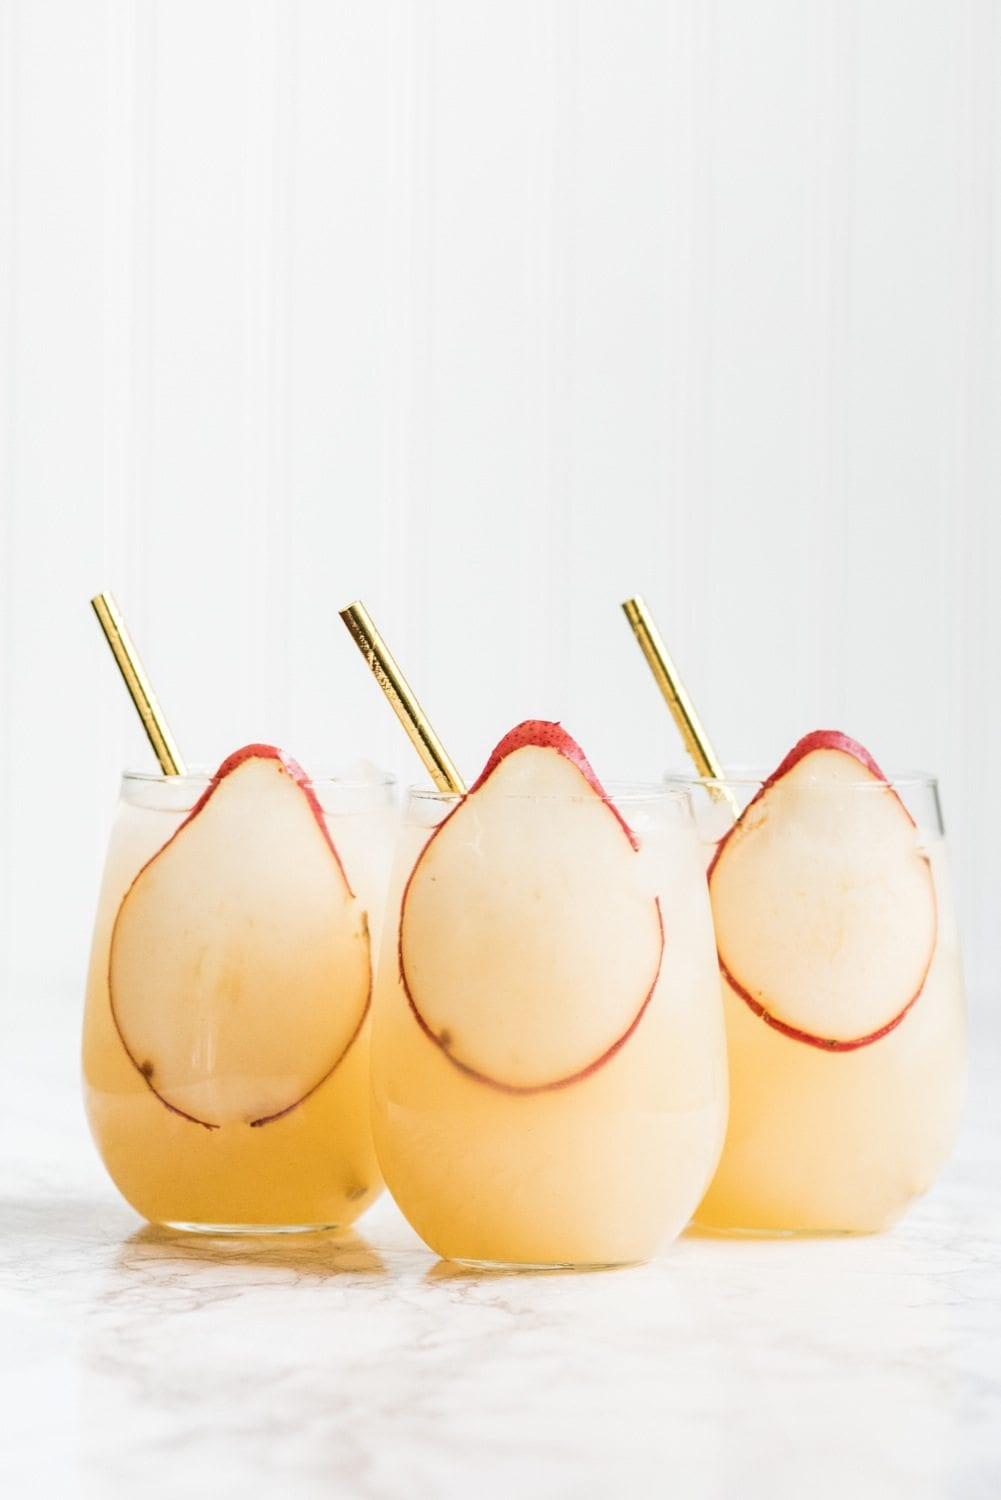 Fizzy pear punch from The Sweetest Occasion